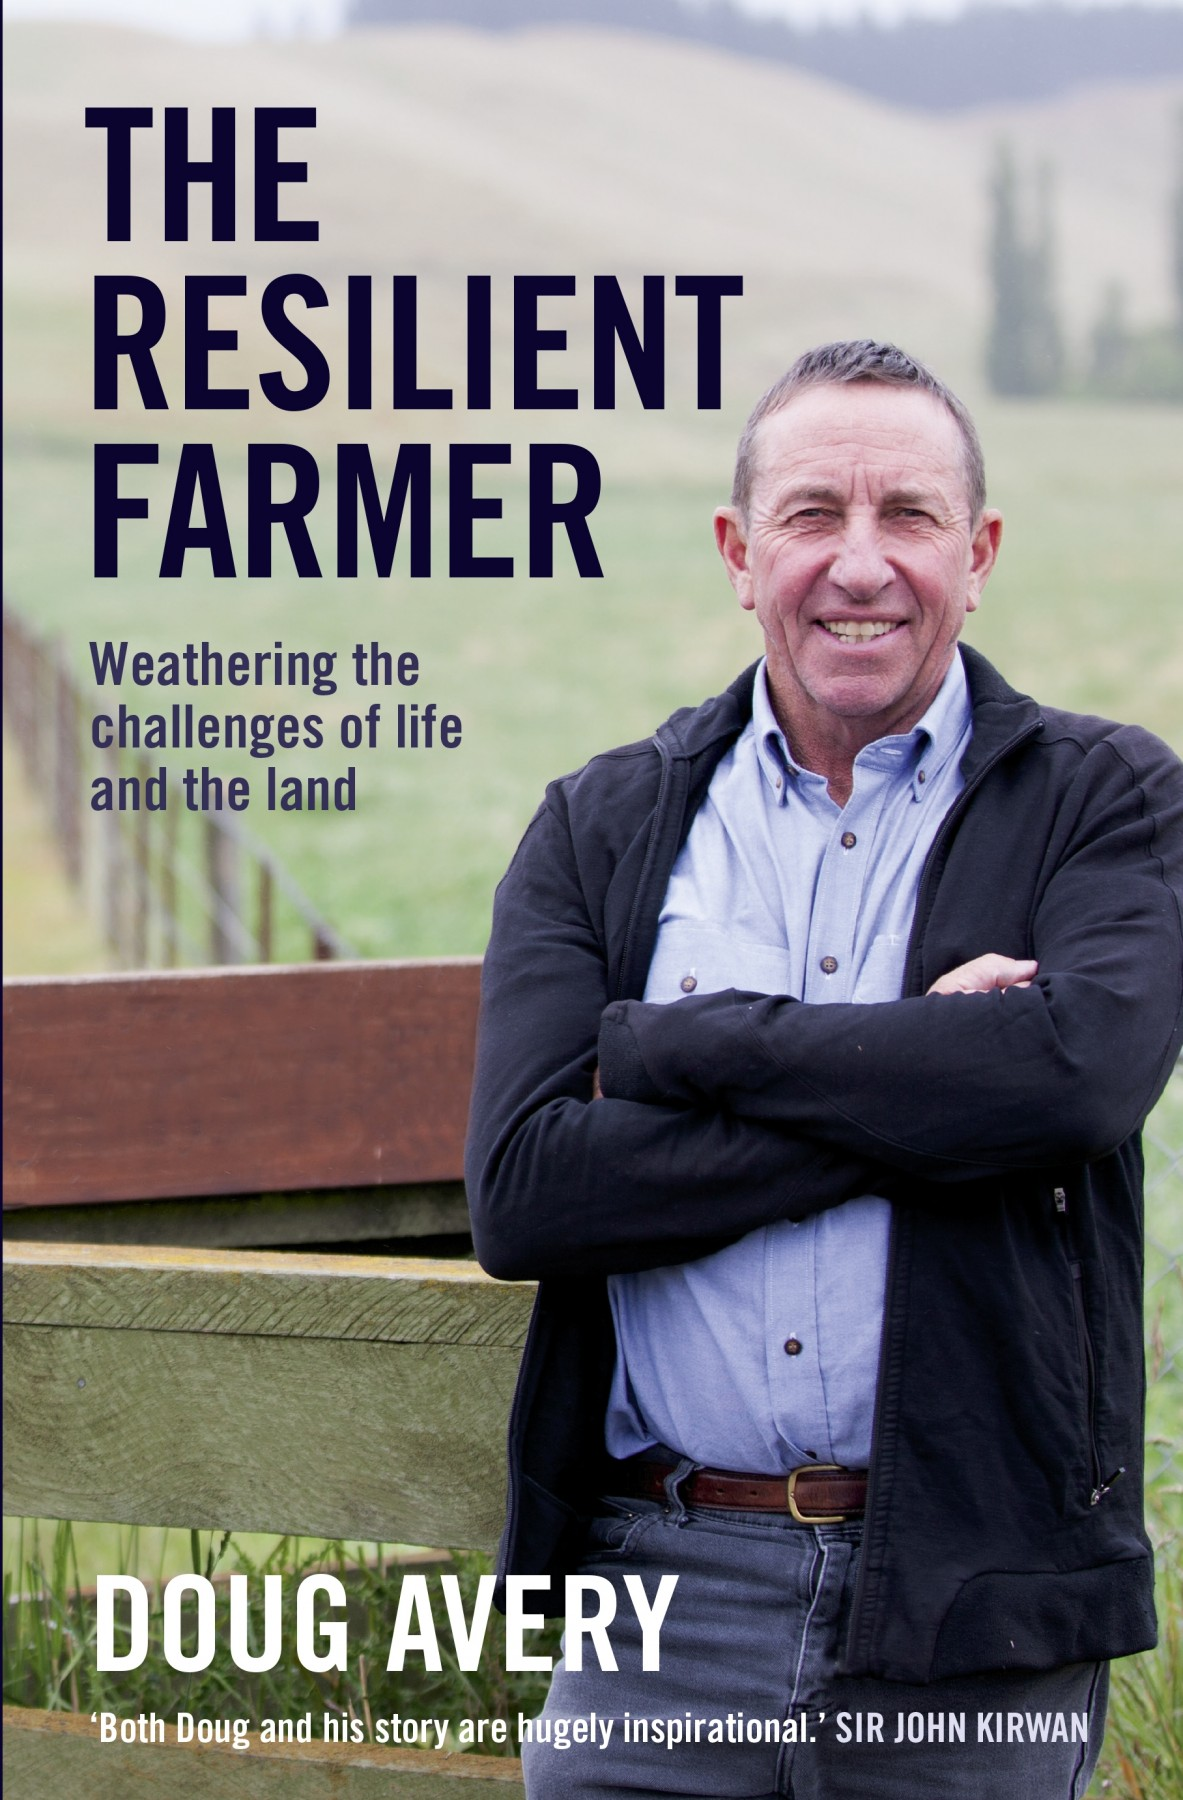 The resilient farmer: Weathering the challenges of life and the land